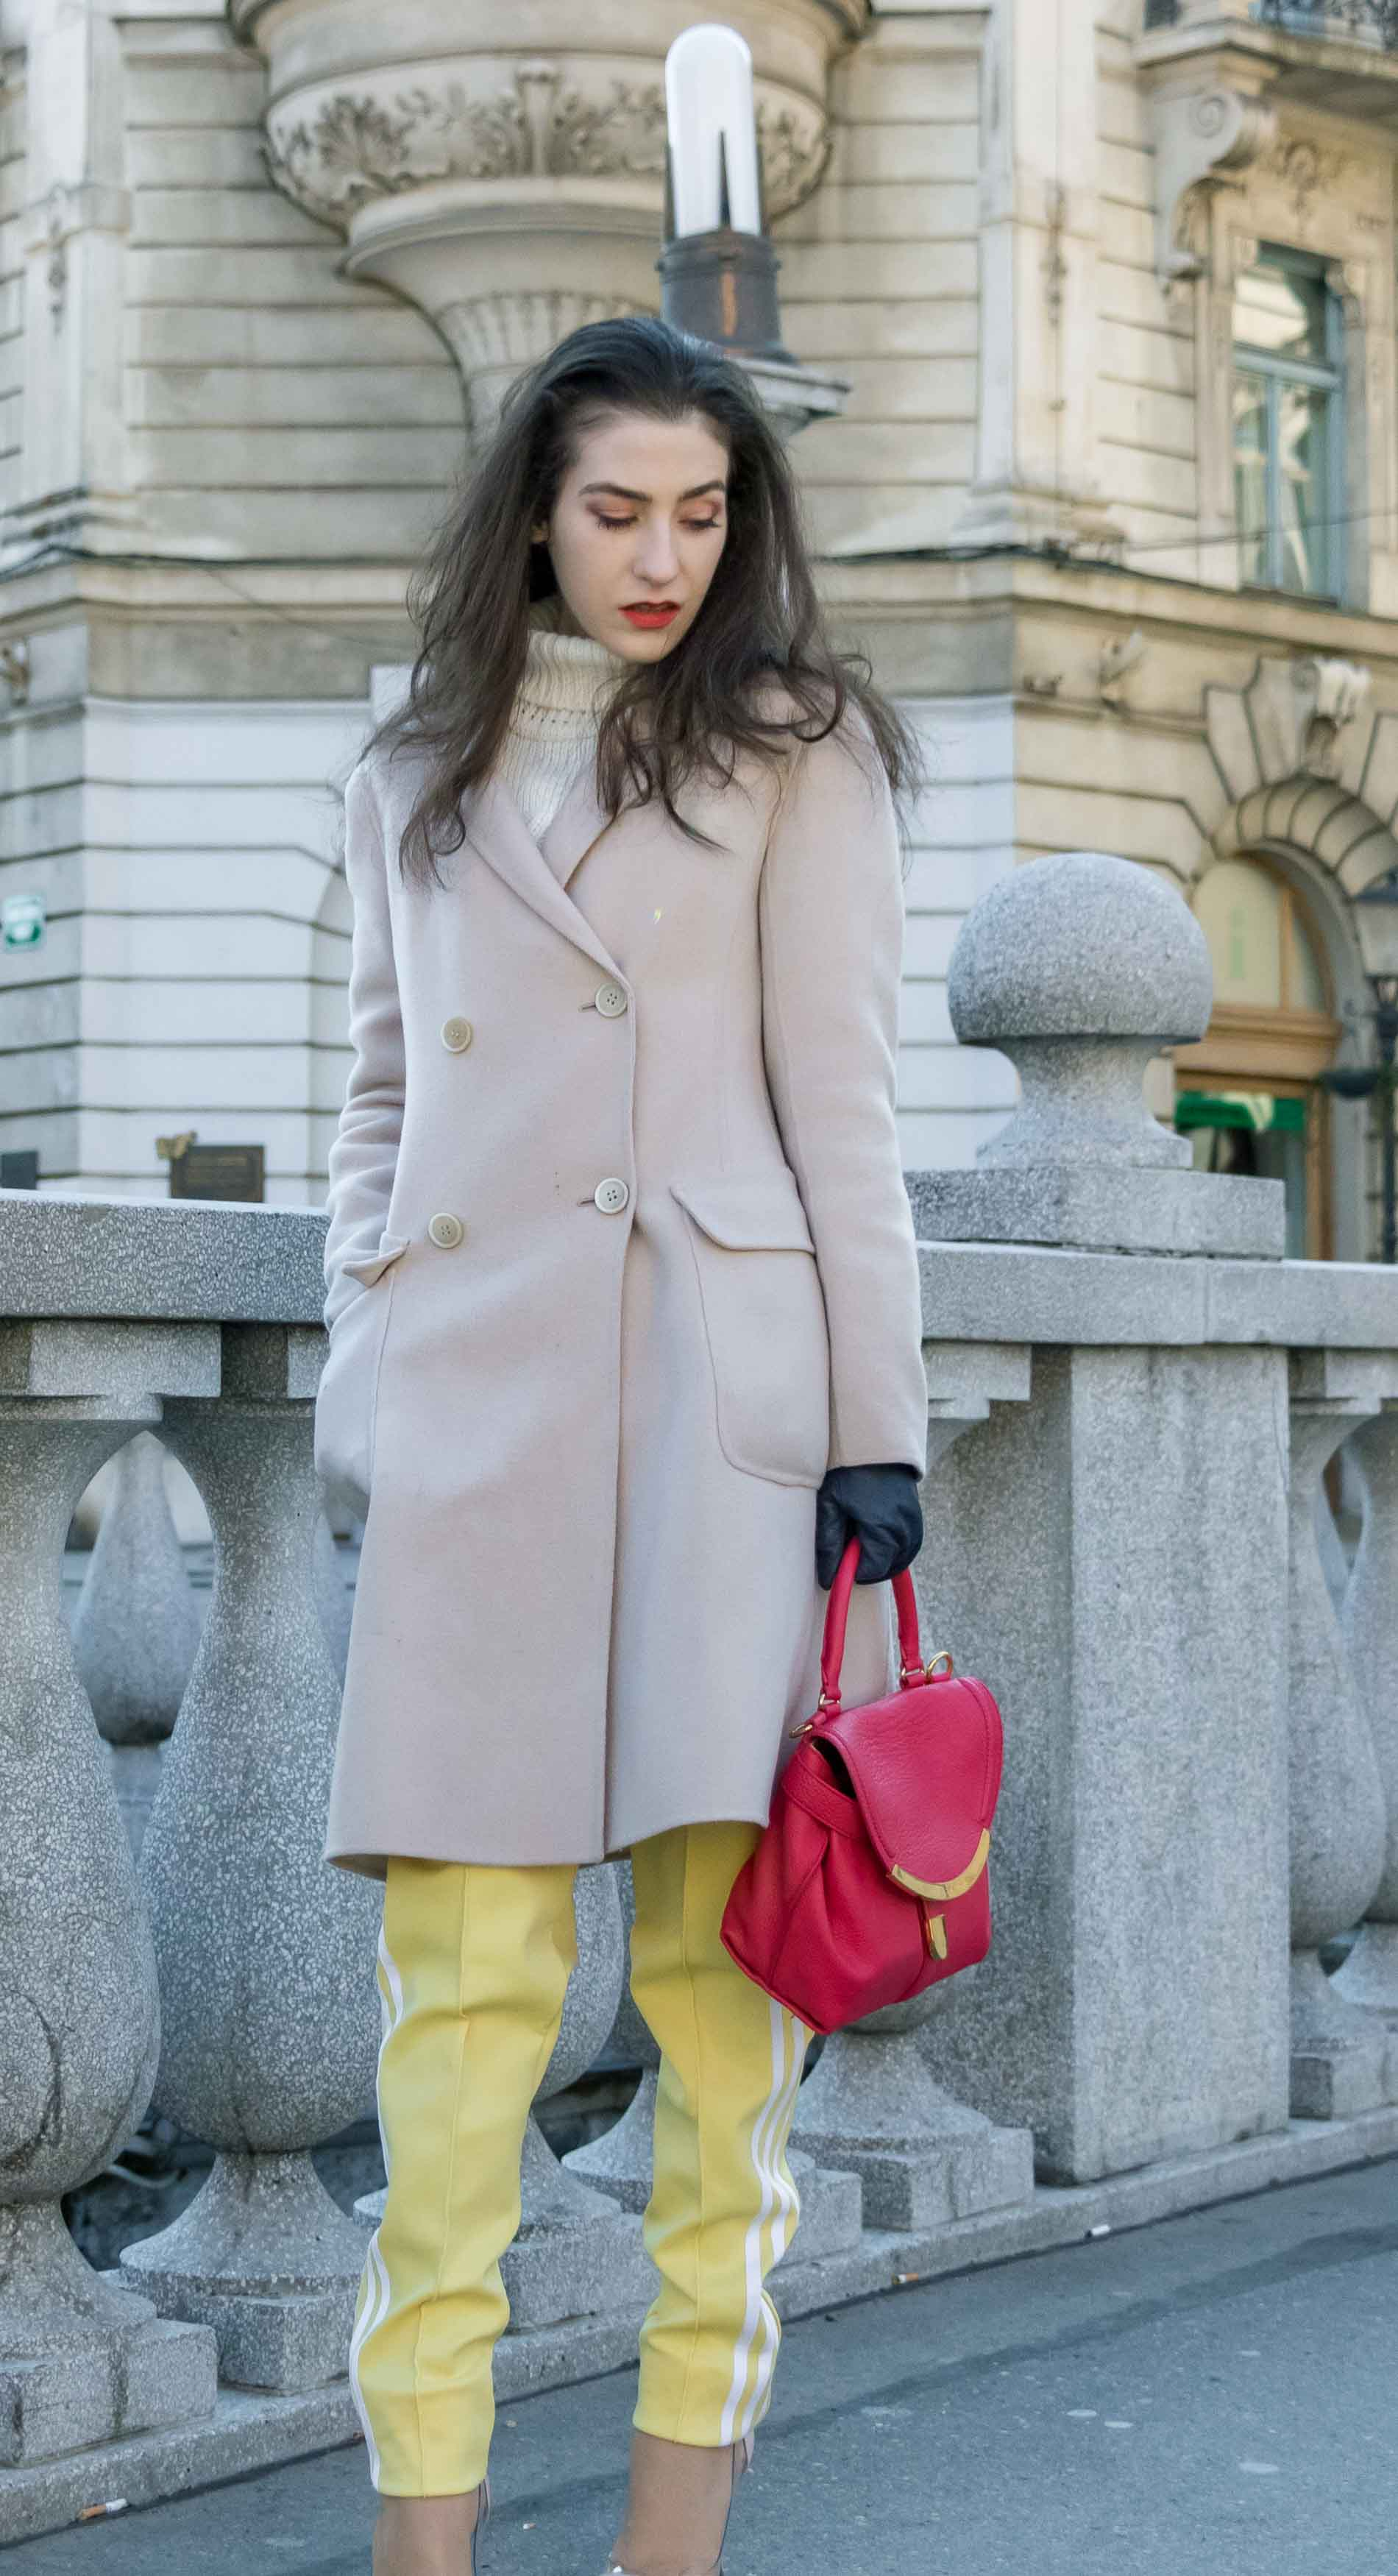 Fashion Blogger Veronika Lipar of Brunette from Wall Street dressed in yellow track pants with white stripes from Adidas, white turtleneck knit sweater, off-white pastel double breasted coat from Weekend Max Mara, blush powder transparent plexi pumps shoes from Gianvito Rossi, pink top handle bag from See by Chloe while standing on the bridge in Ljubljana on a cold spring day